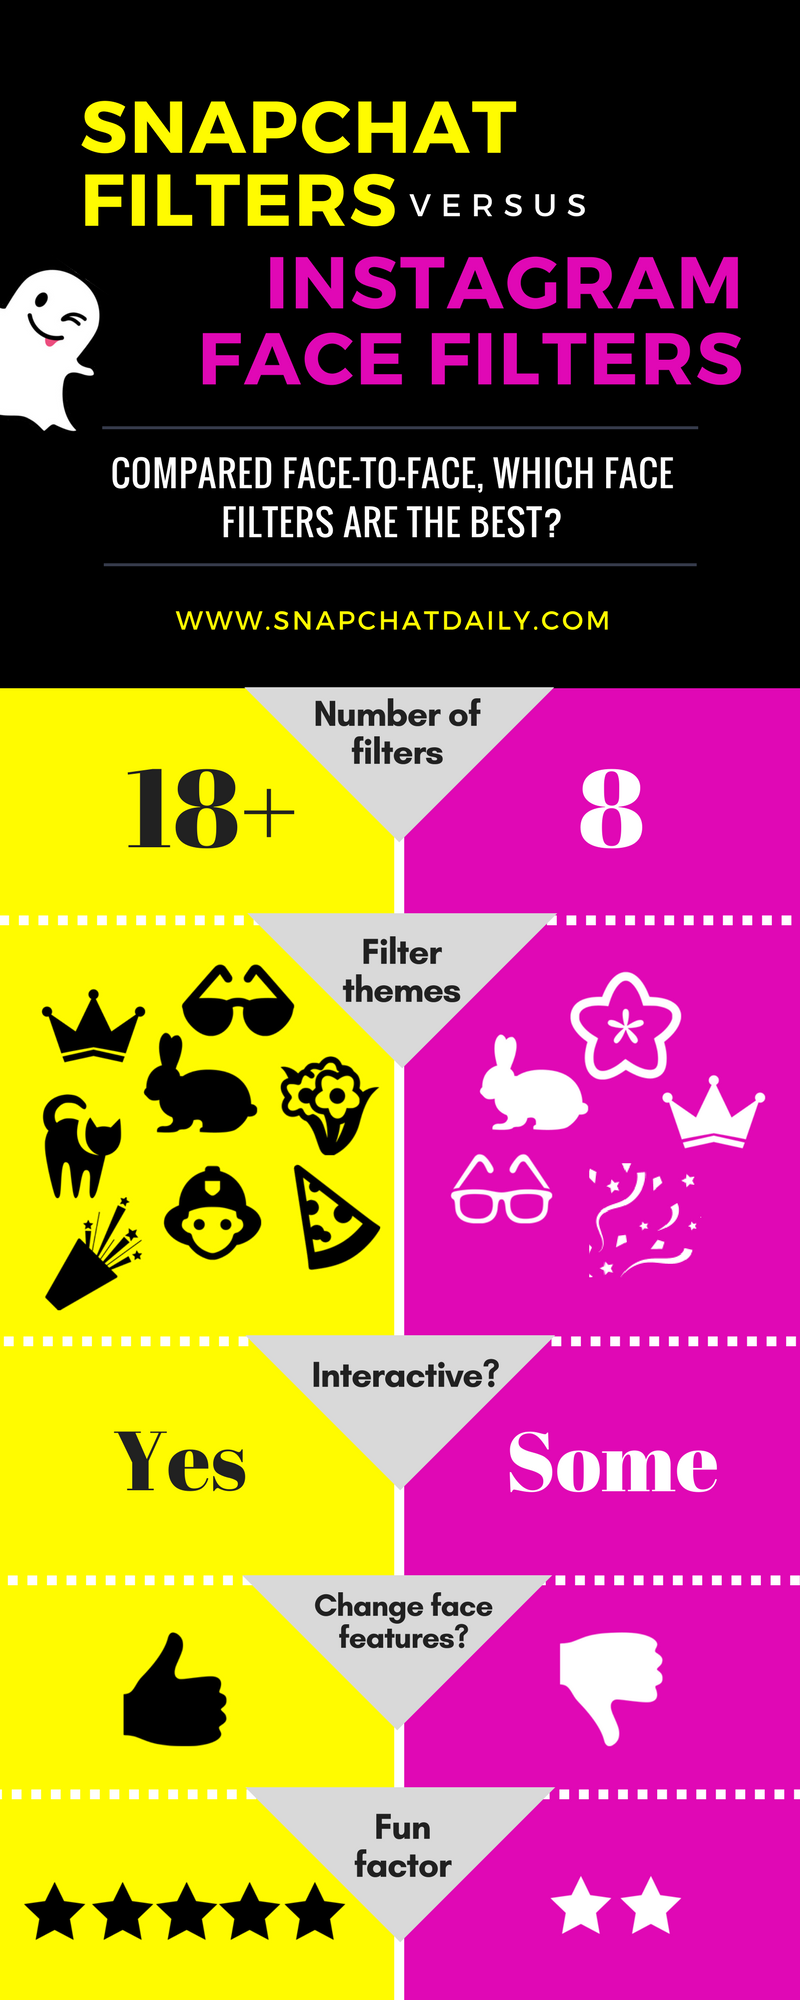 snapchat filters vs instagram face filters infographic